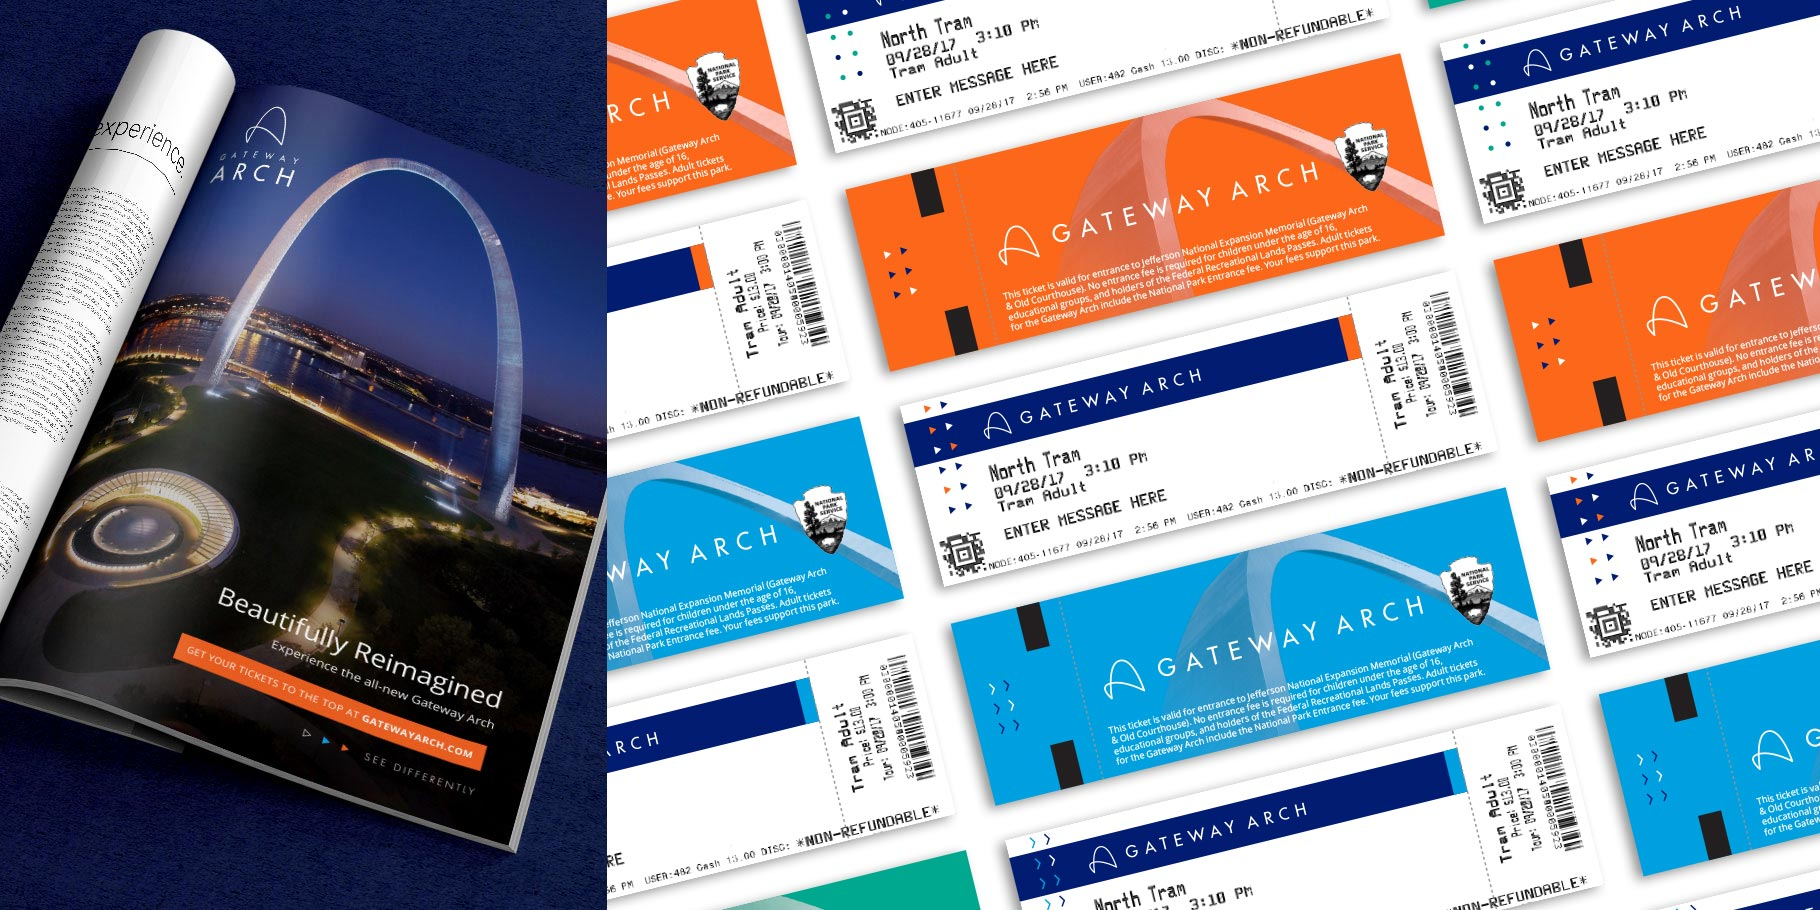 Gateway Arch print ad and tram ticket designs